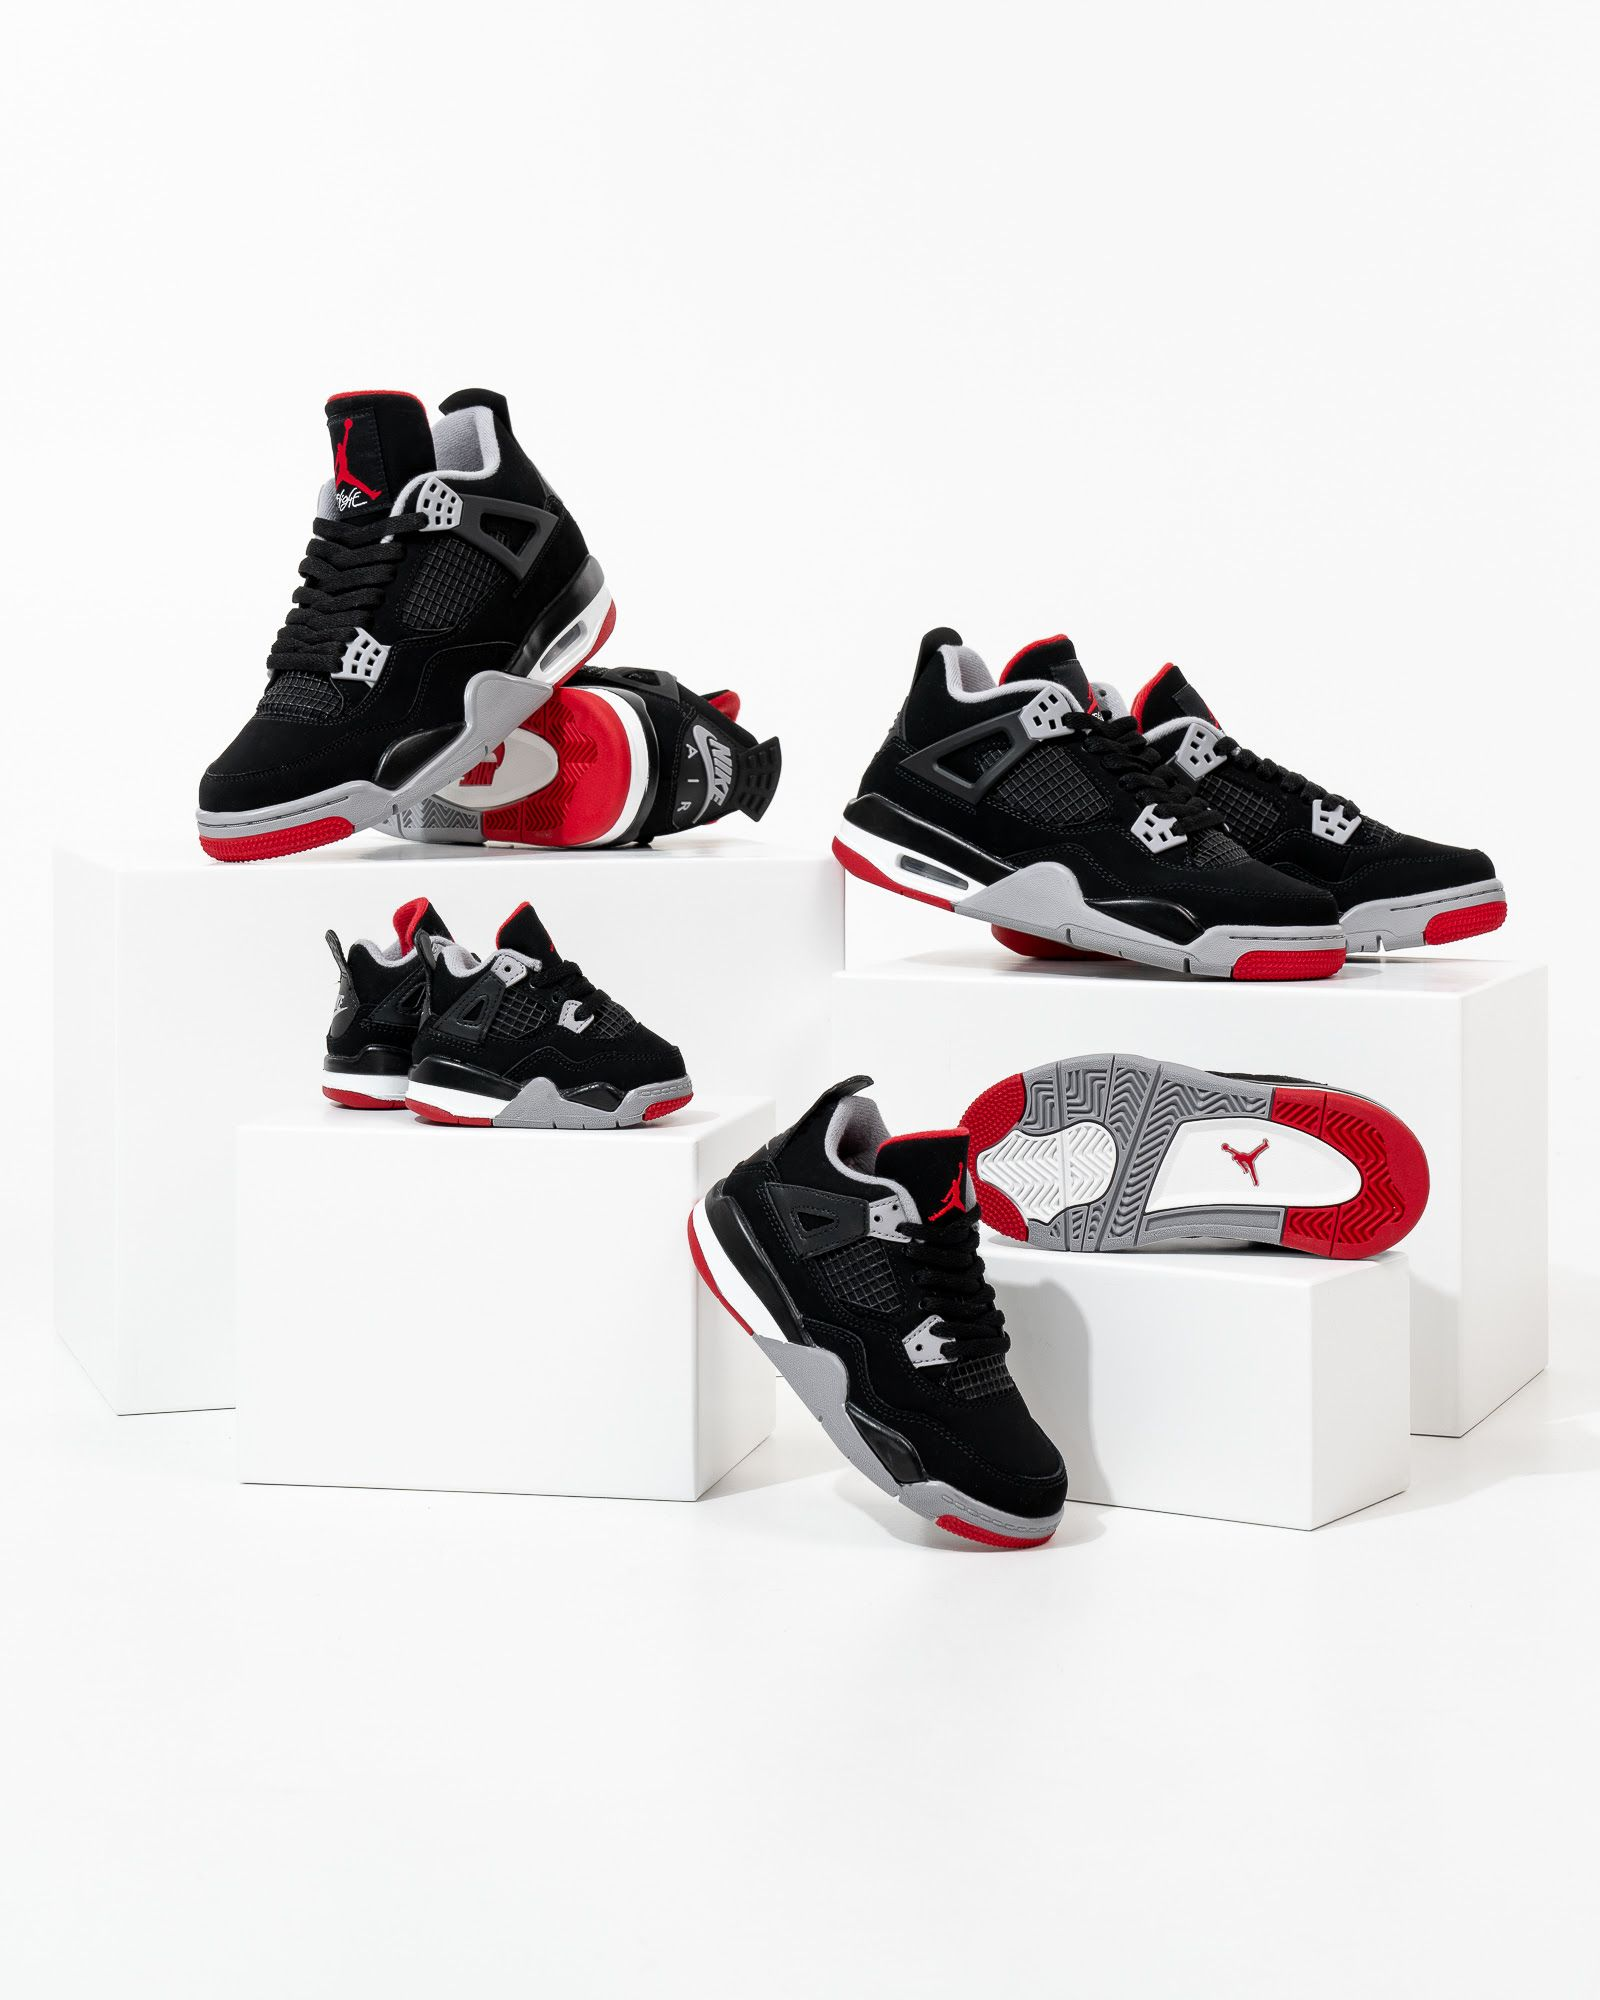 46046e25c5e Air Jordan 4 BRED / Releasing | Street Sneakers | Jordans, Air ...